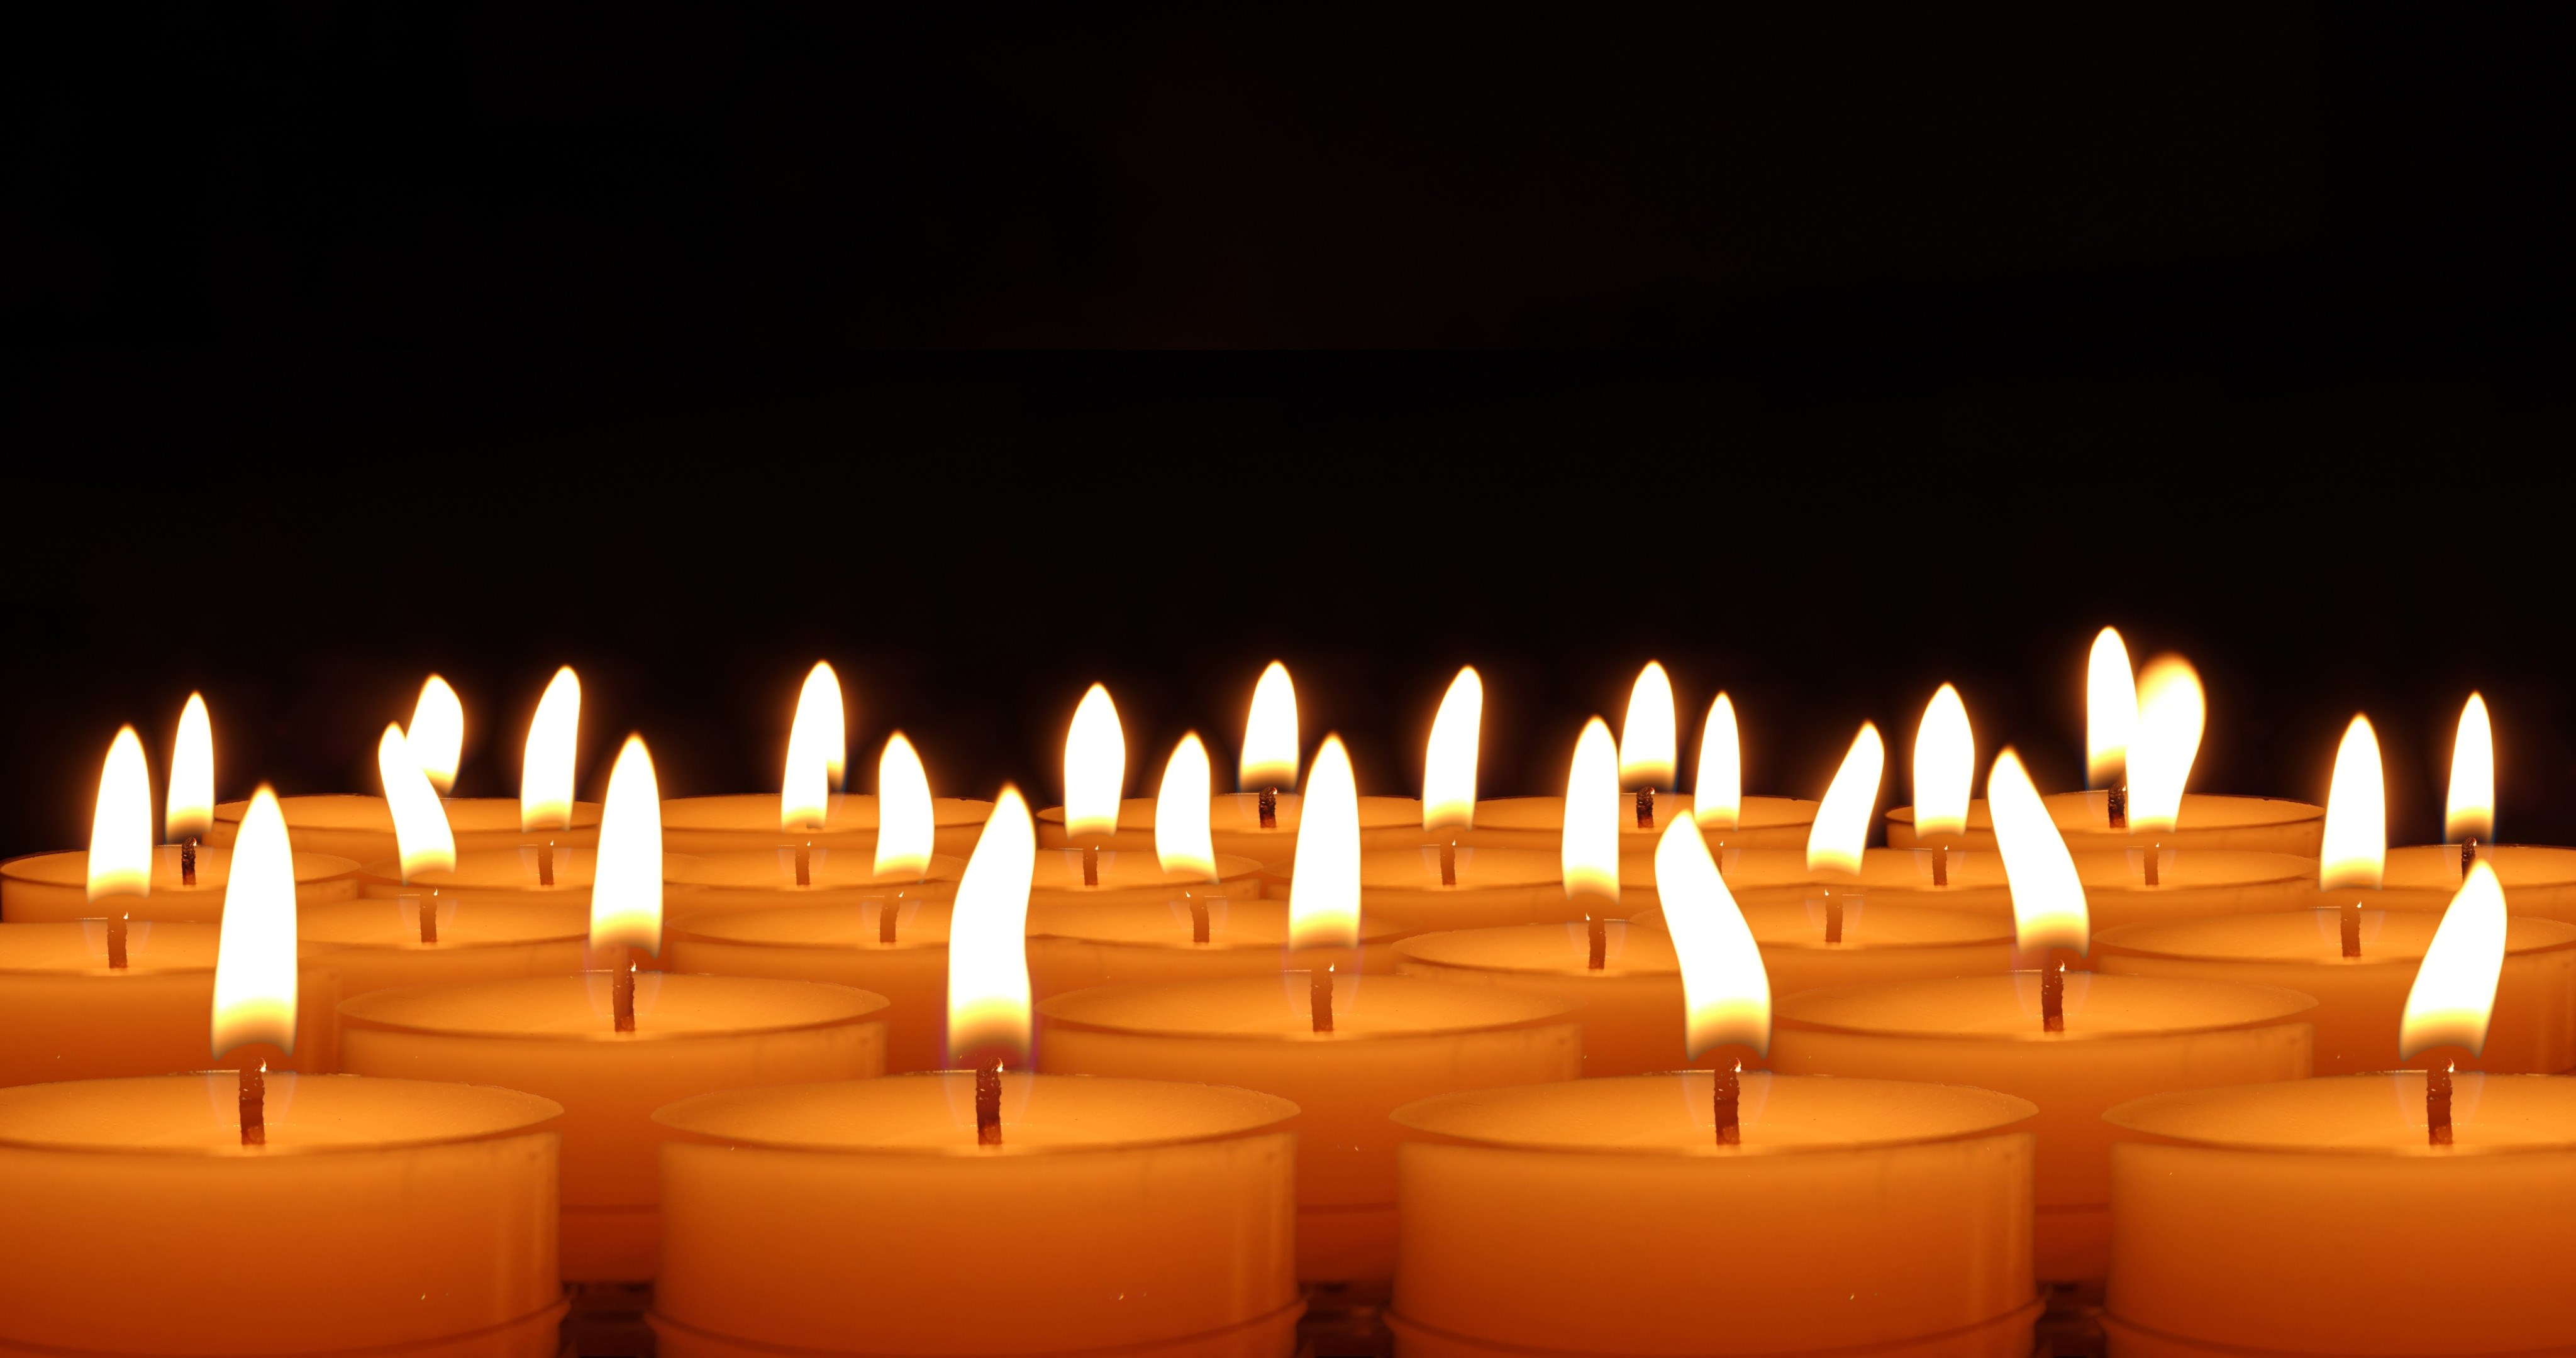 Candles For Christmas 4k Ultra Hd Wallpaper High Quality Walls